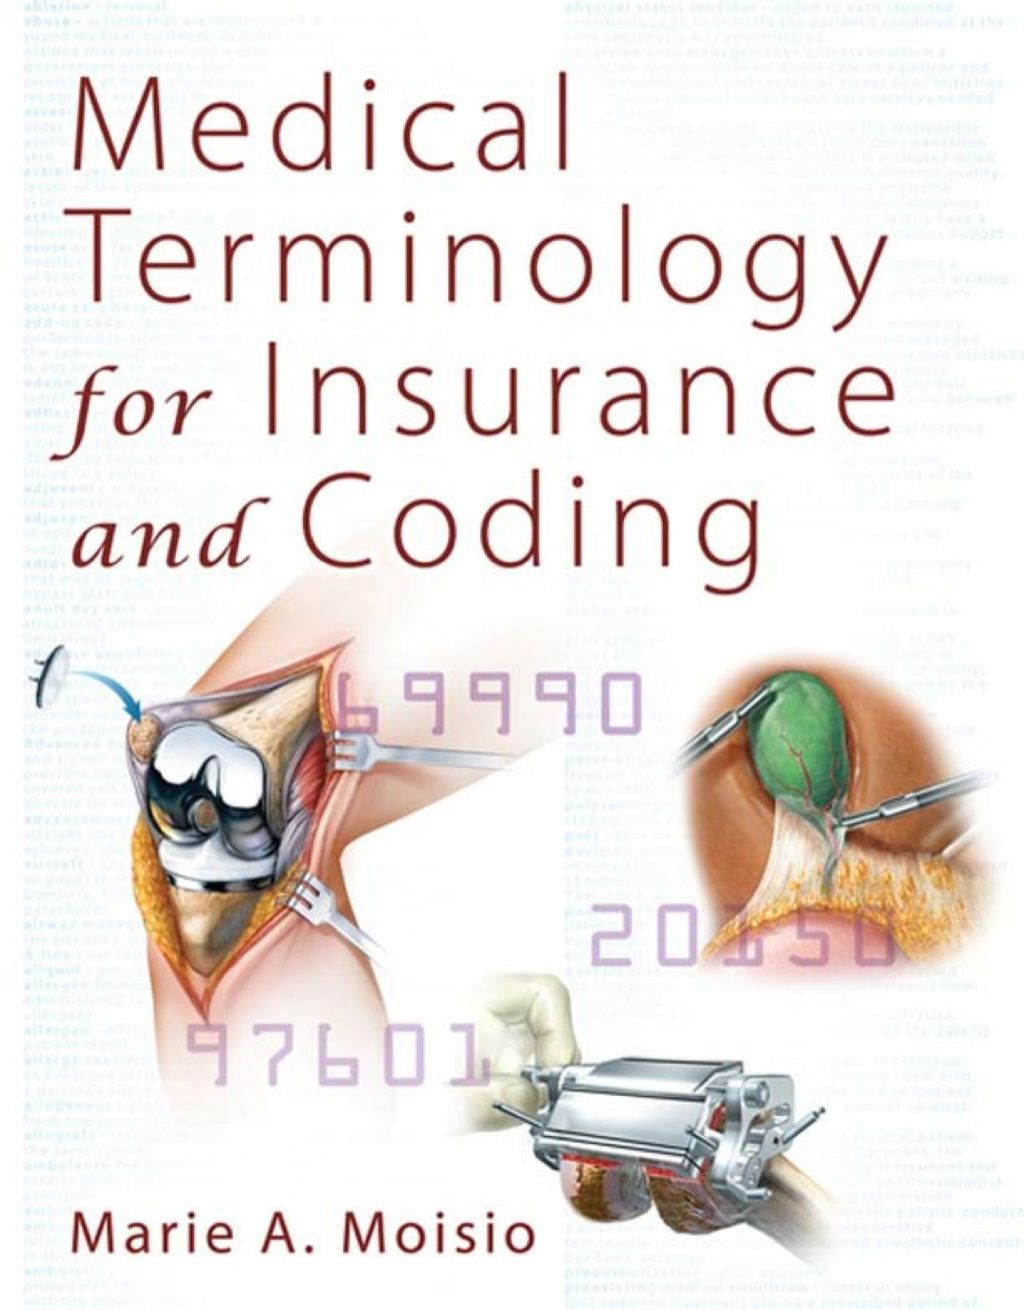 Medical Terminology for Insurance and Coding (eBook Rental